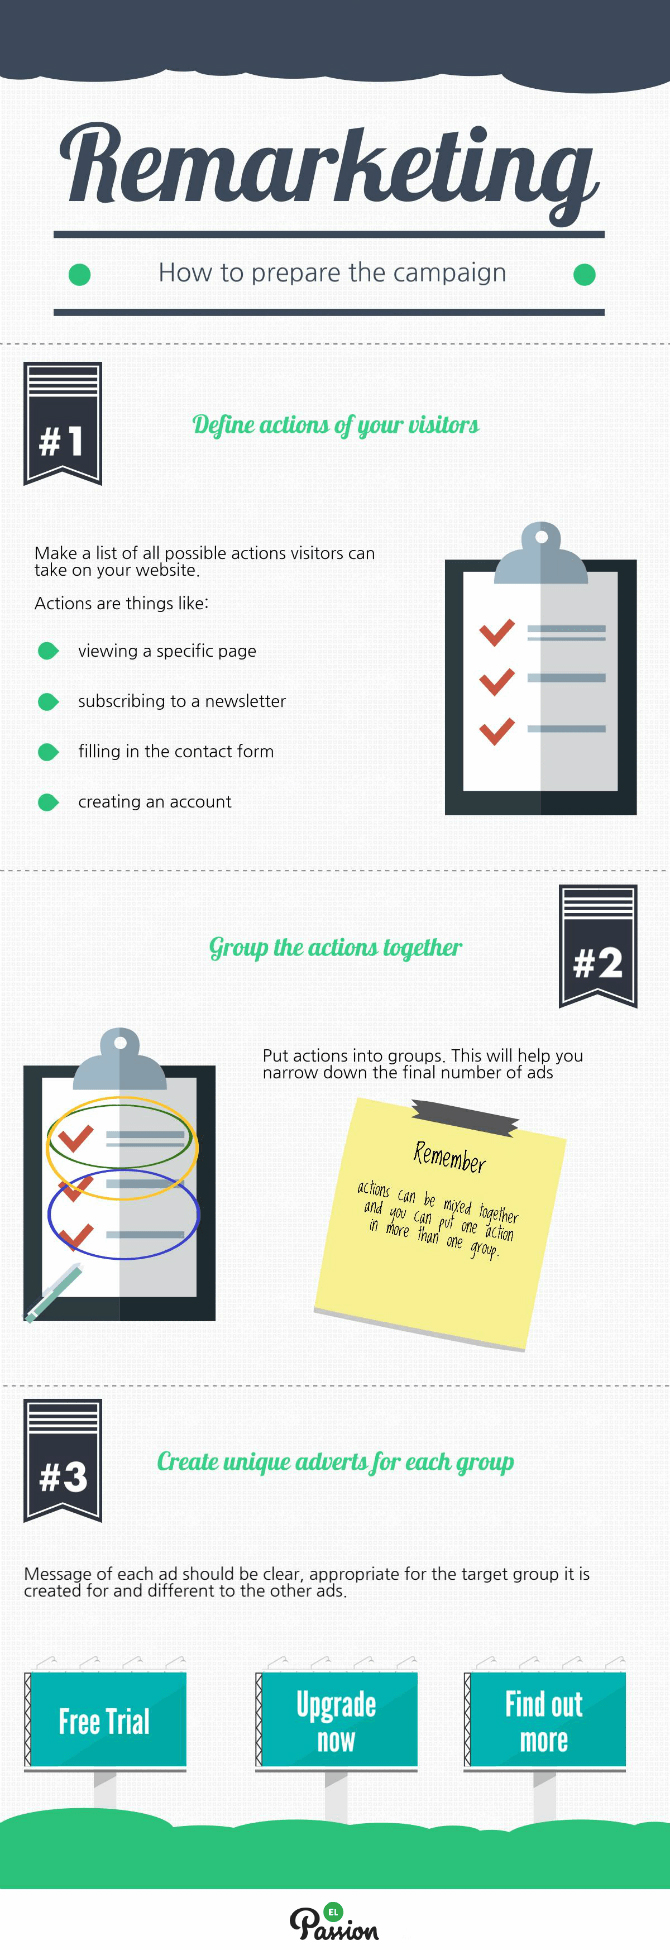 Remarketing - How To Prepare A Campaign - Infographic